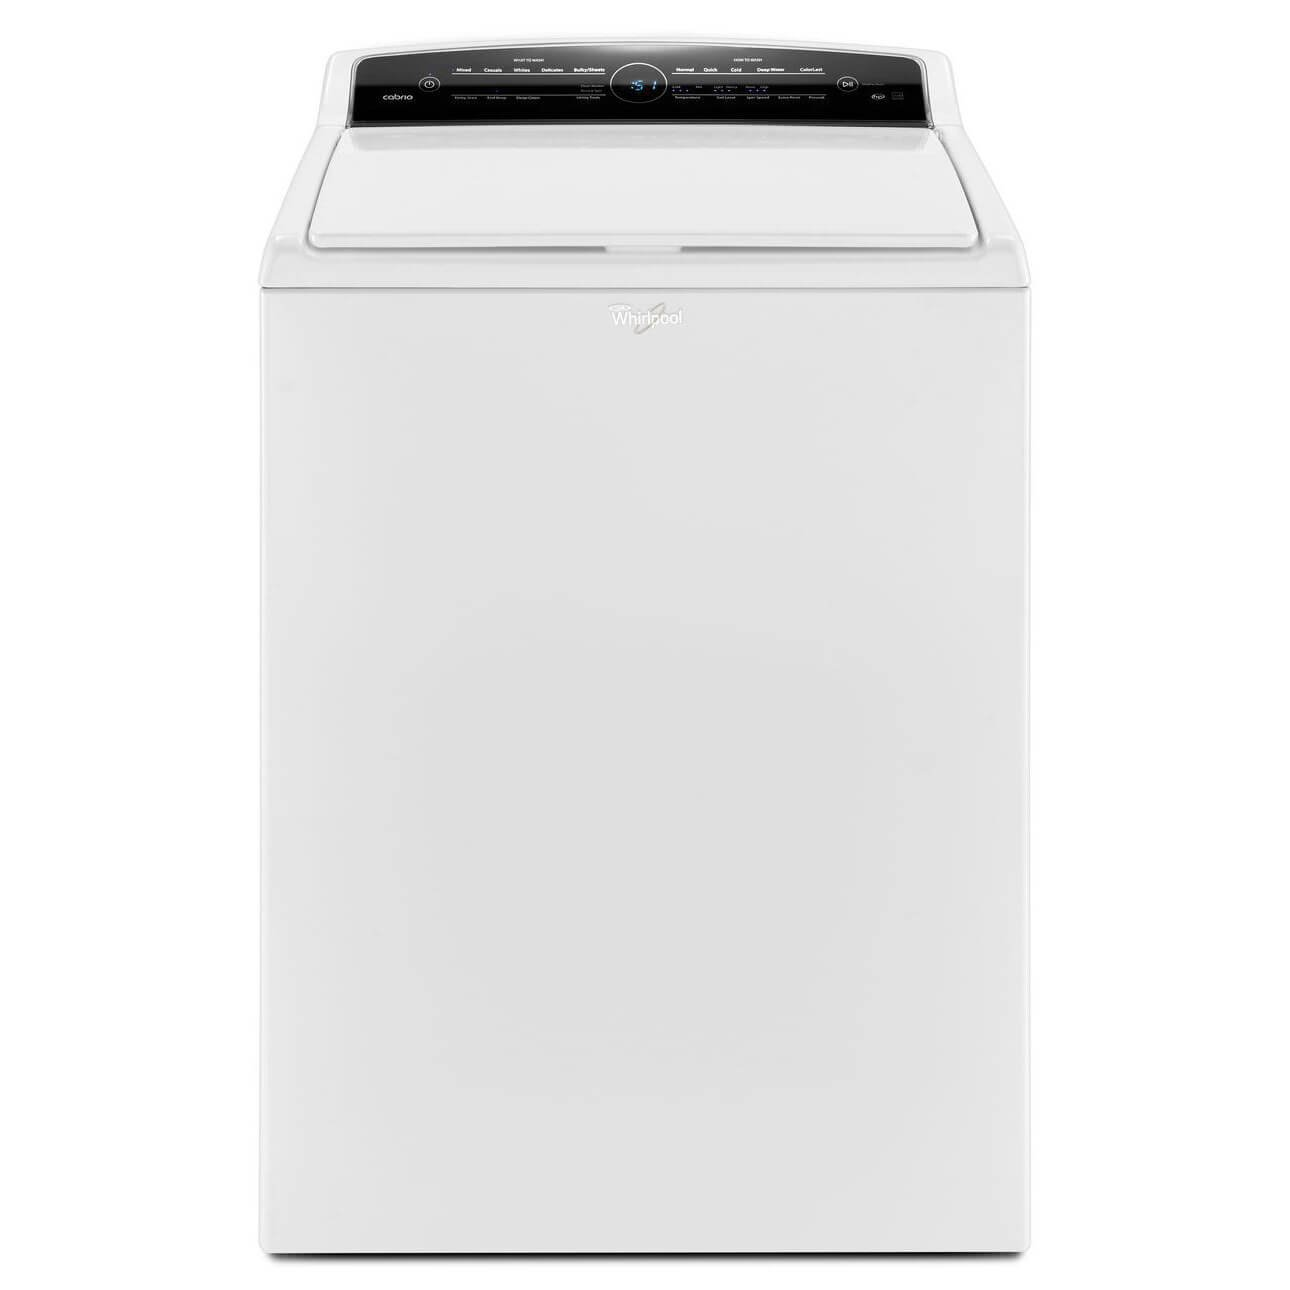 Whirlpool Wtw7000dw 48 Cu Ft Cabrio He Top Load Parts Diagram List For Model Geq9800pw1 Whirlpoolparts Dryer Washer W Exclusive Colorlast Option Appliances